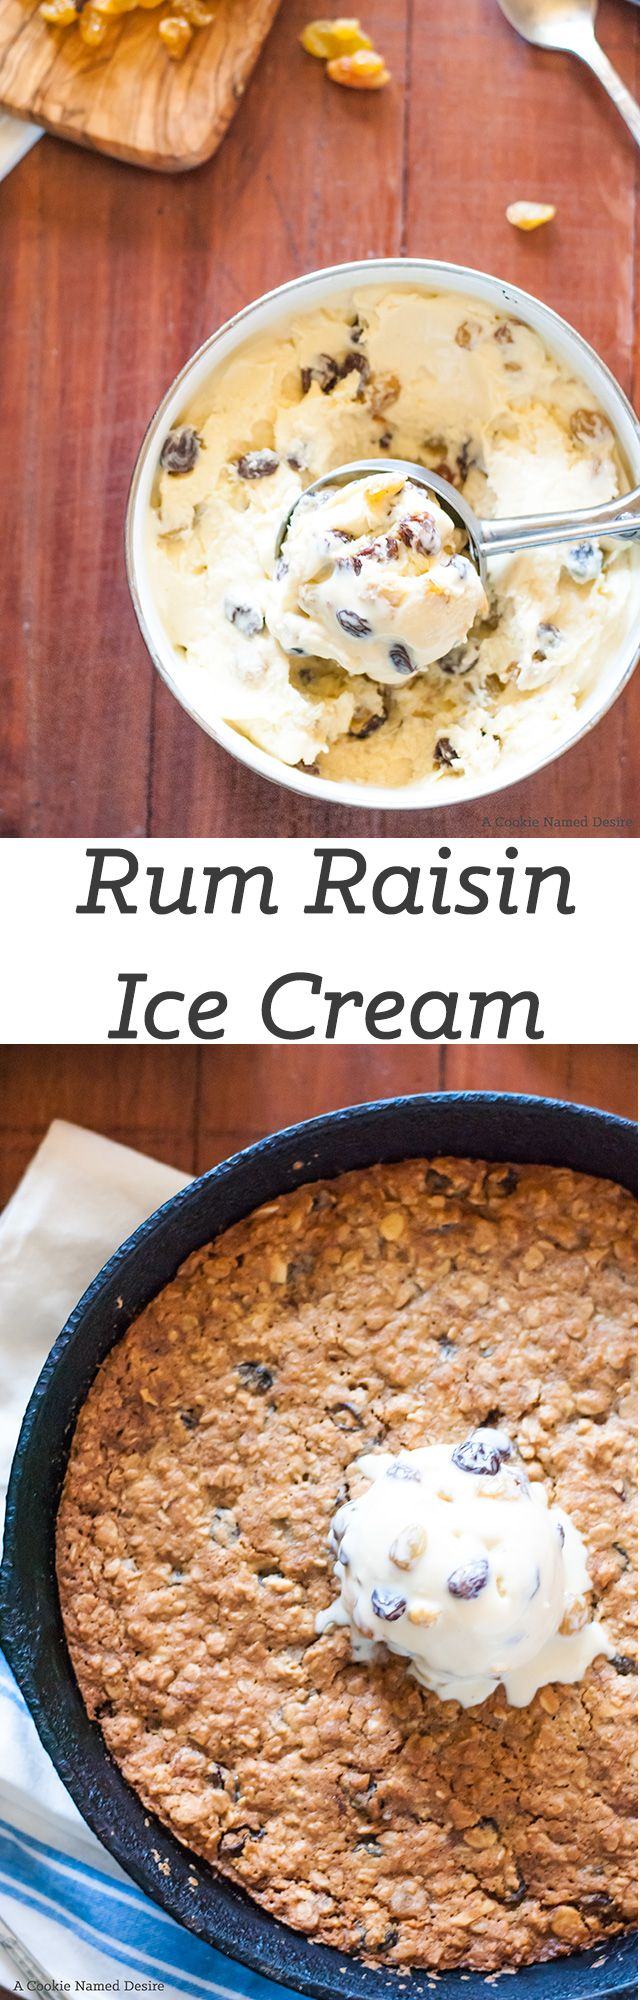 about Rum Raisin Ice Cream on Pinterest | Rum and raisin recipes, Rum ...